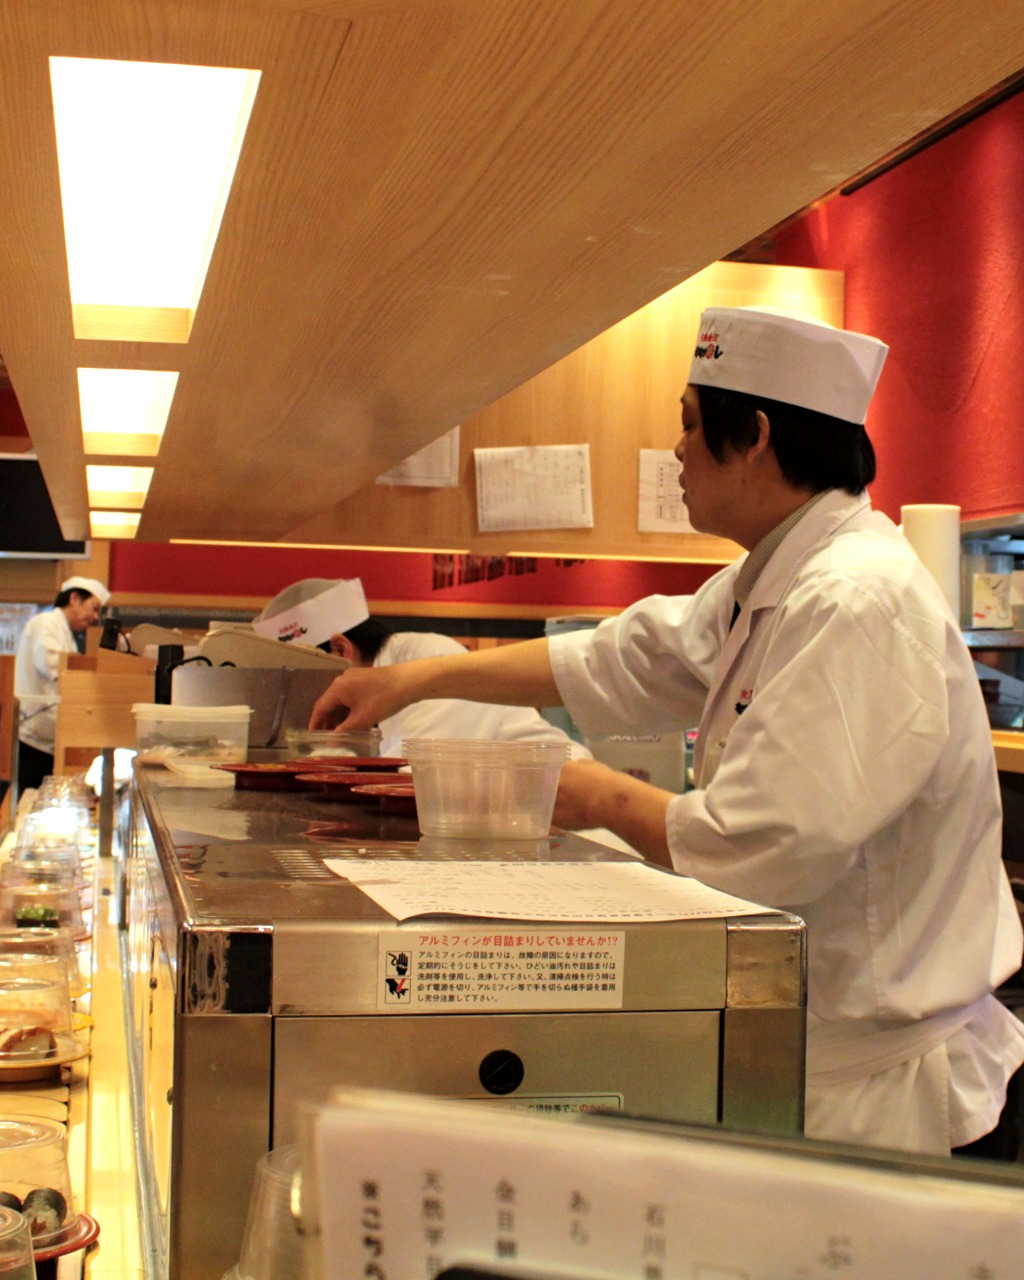 Chefs at Mori Mori Sushi in Omicho Fish Market, Kanazawa Japan